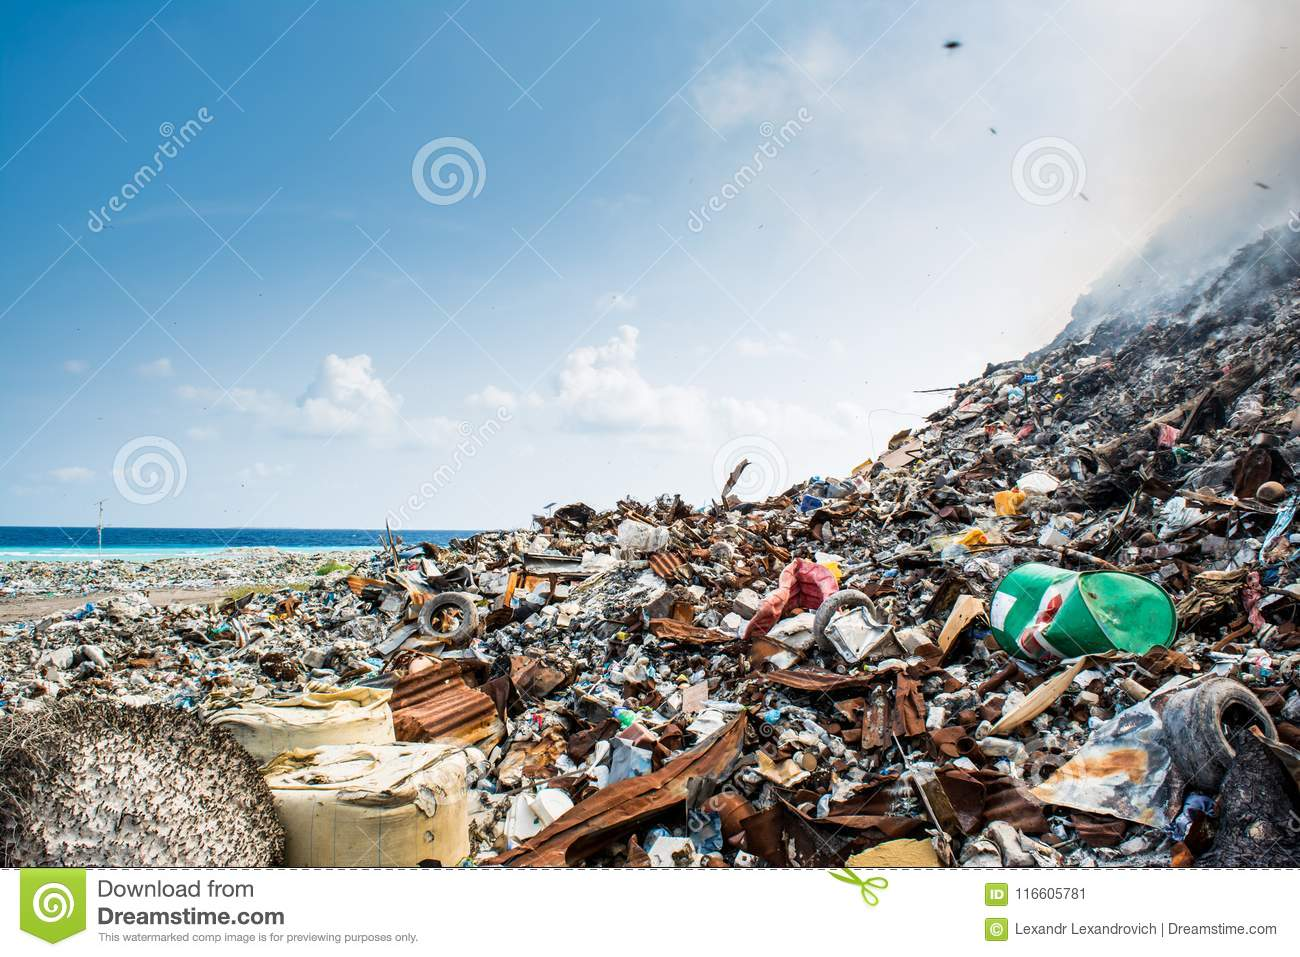 Refuse at the garbage dump full of smoke, litter, plastic bottles,rubbish and trash at tropical island